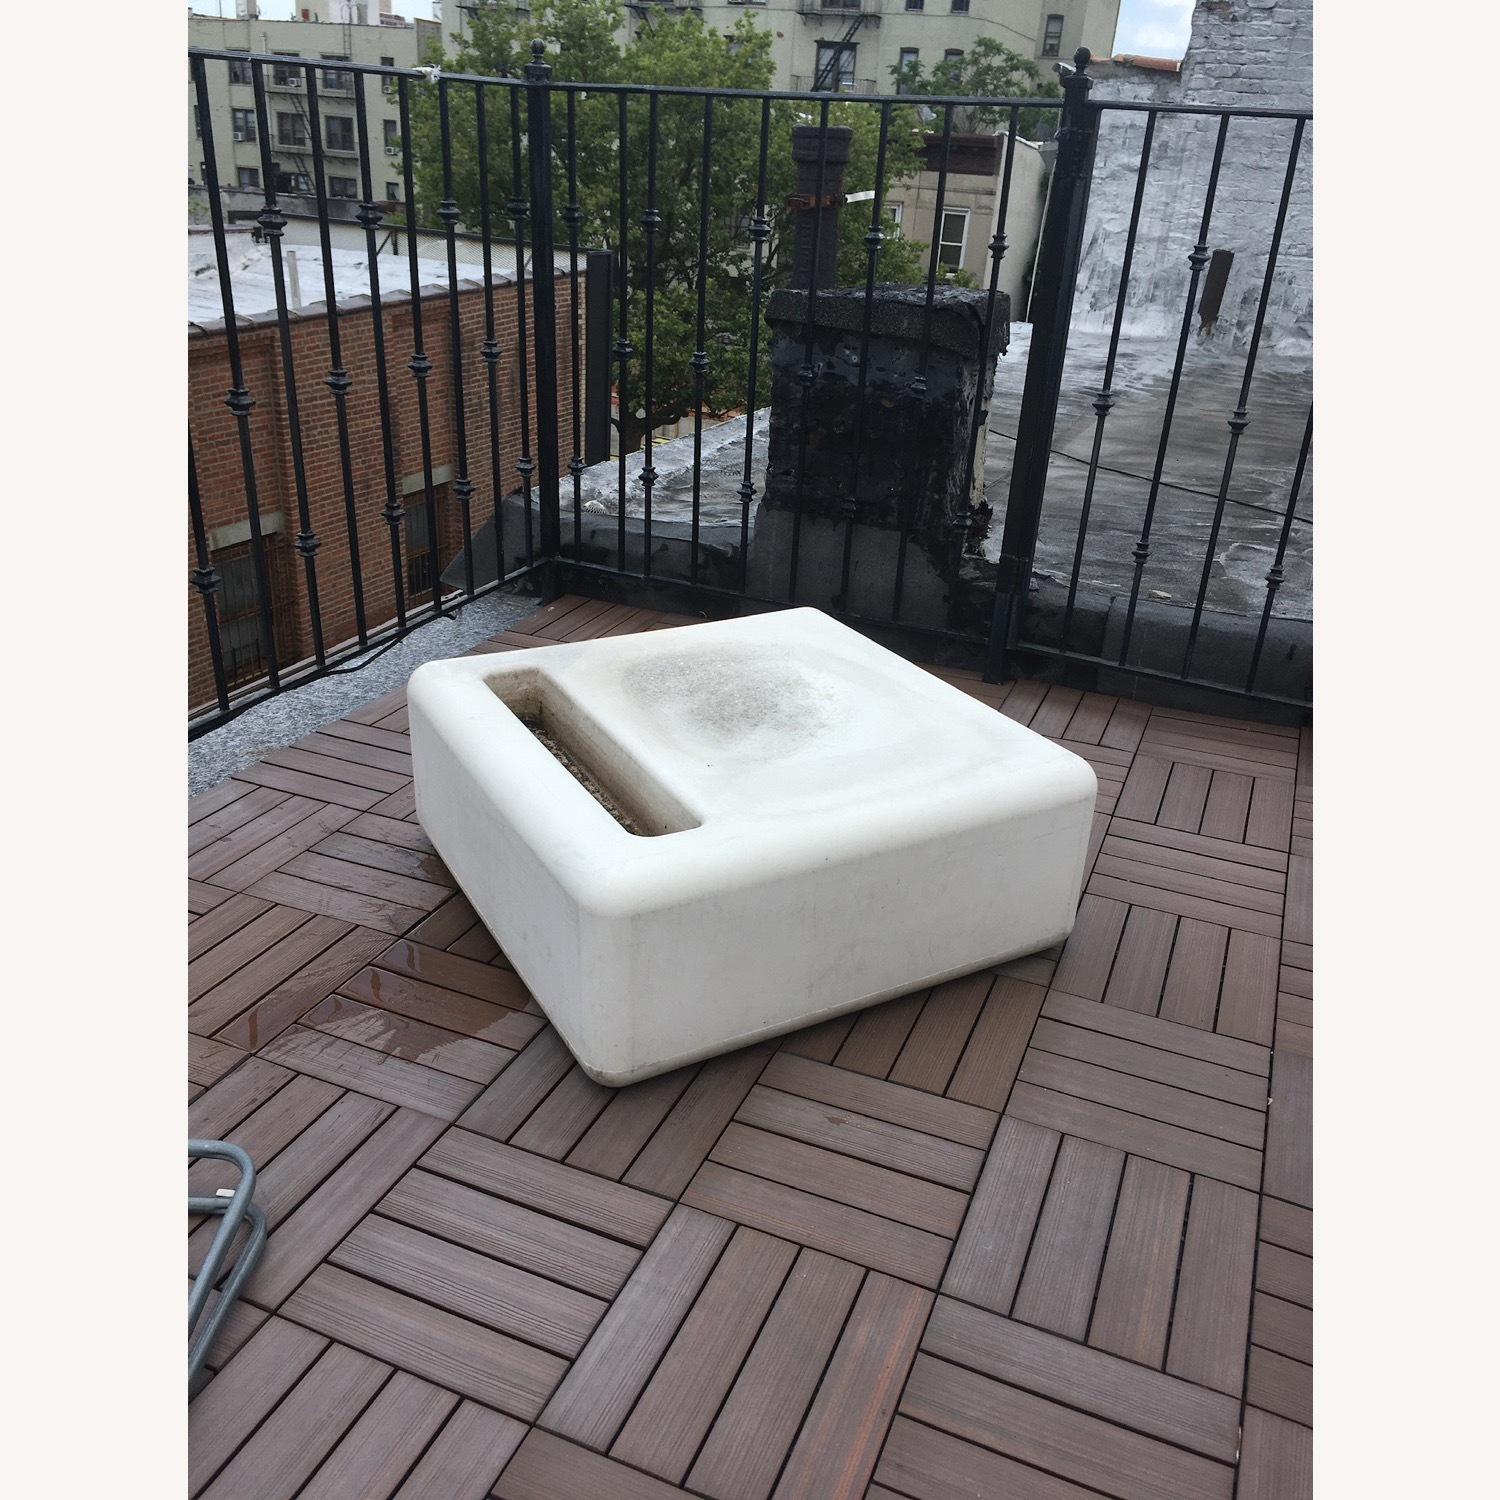 Modern Recycled Plastic Outdoor Seating - image-1